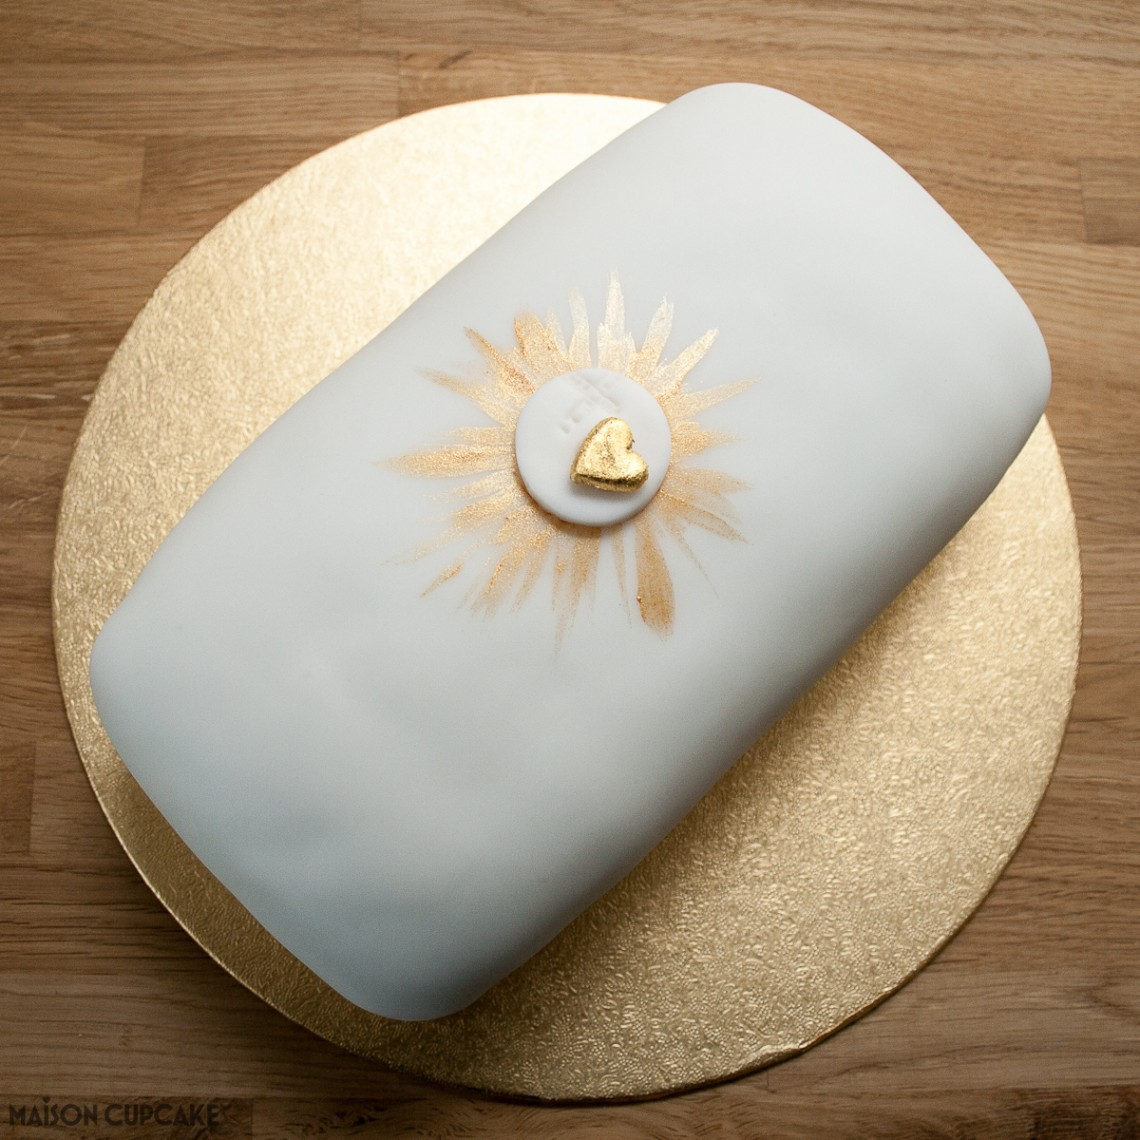 First Communion Cake with hidden chocolate sponge crucifix inside